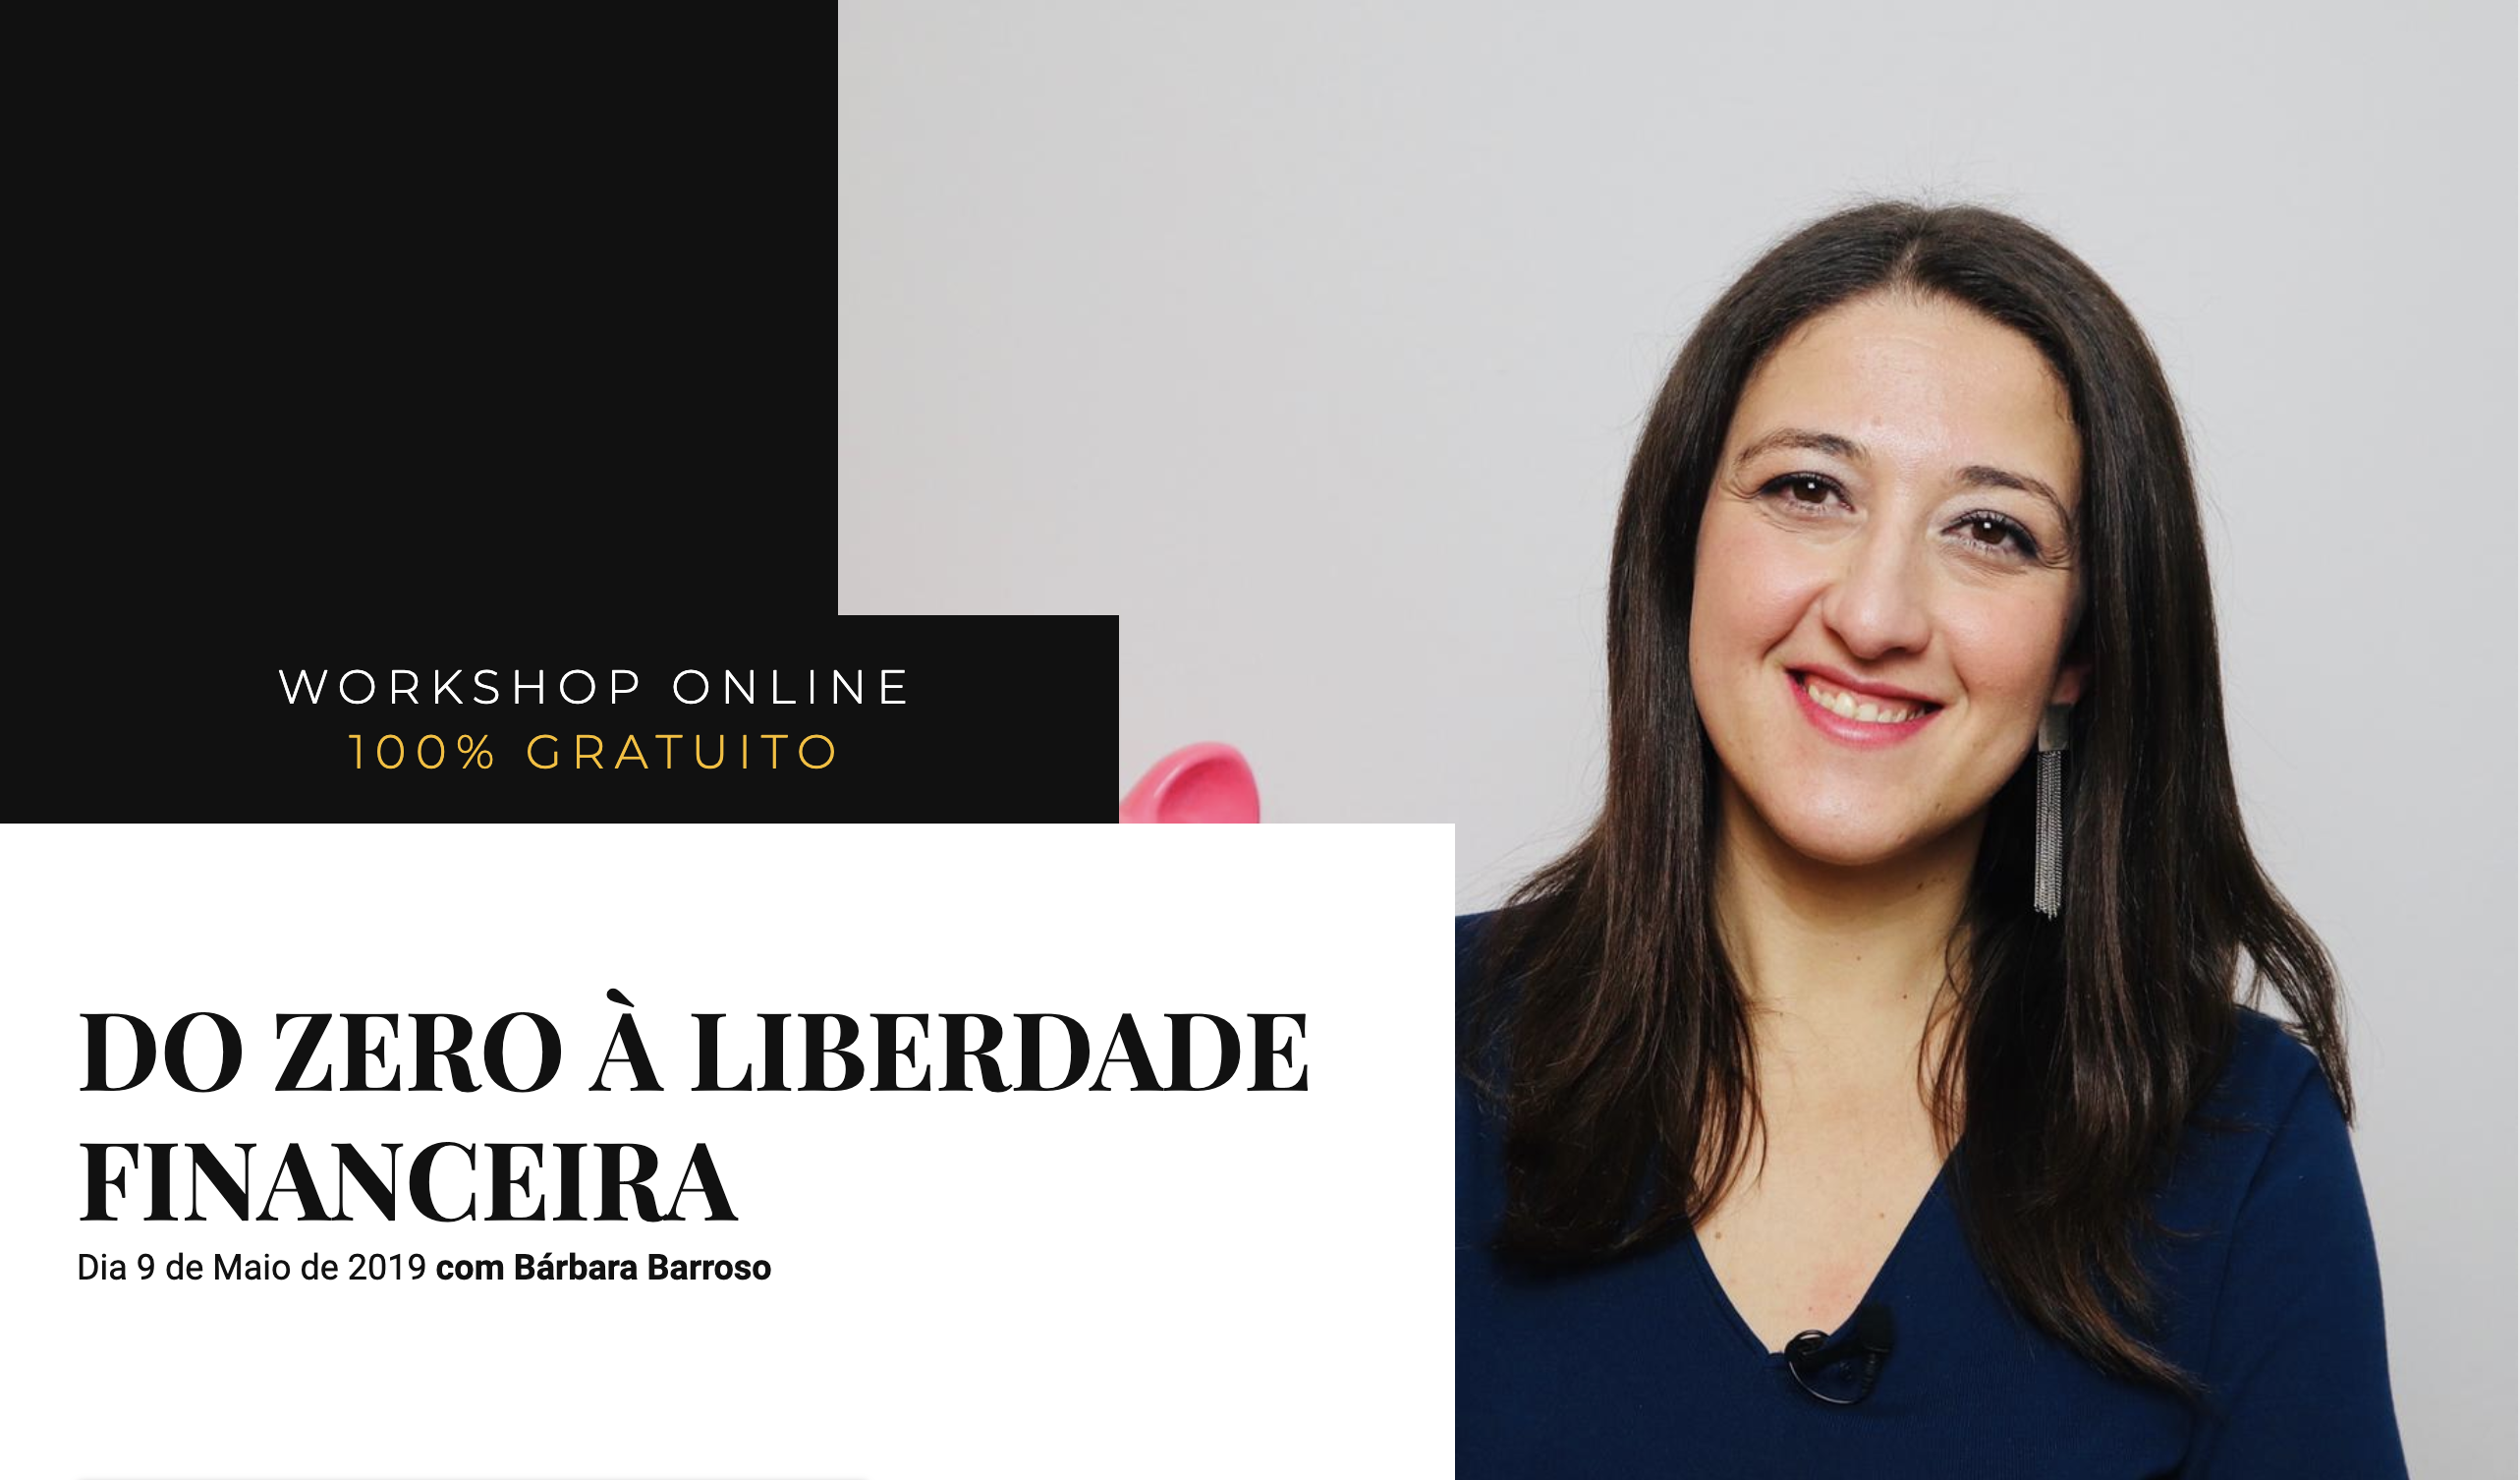 WorkshopOnline_Gratuito_BarbaraBarroso